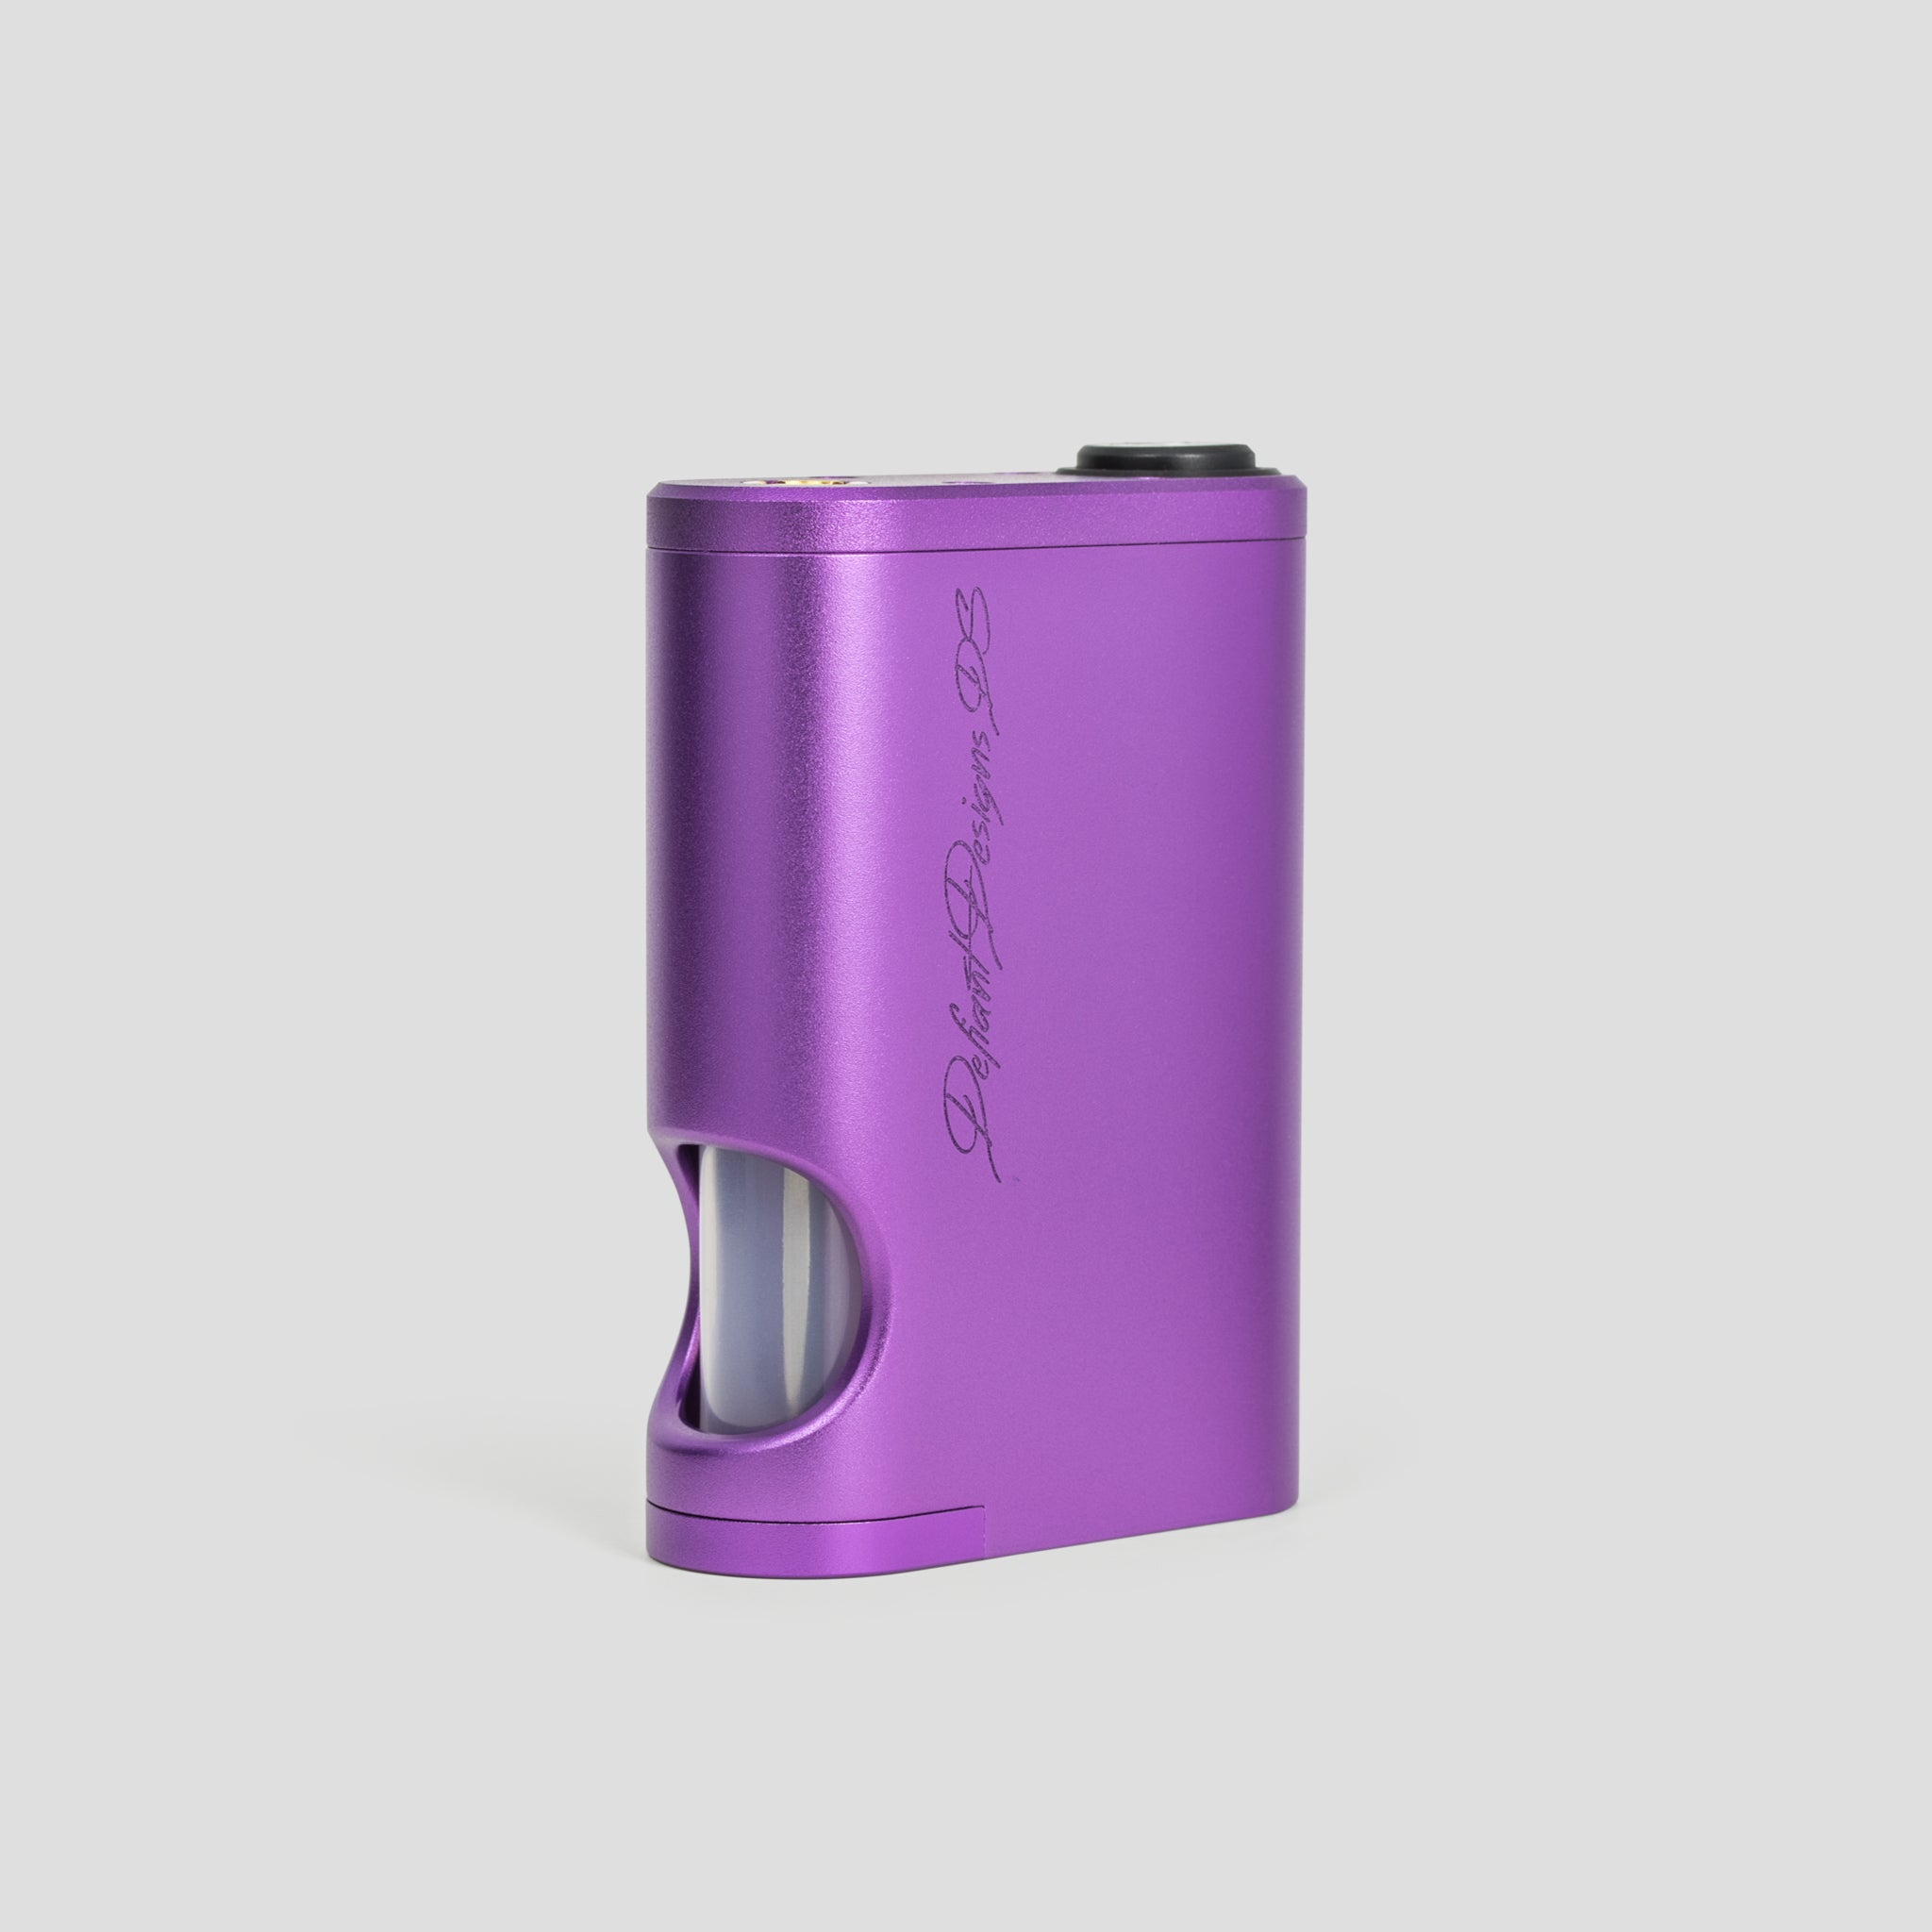 Defiant Designs DS Mechanical Squonk Mod